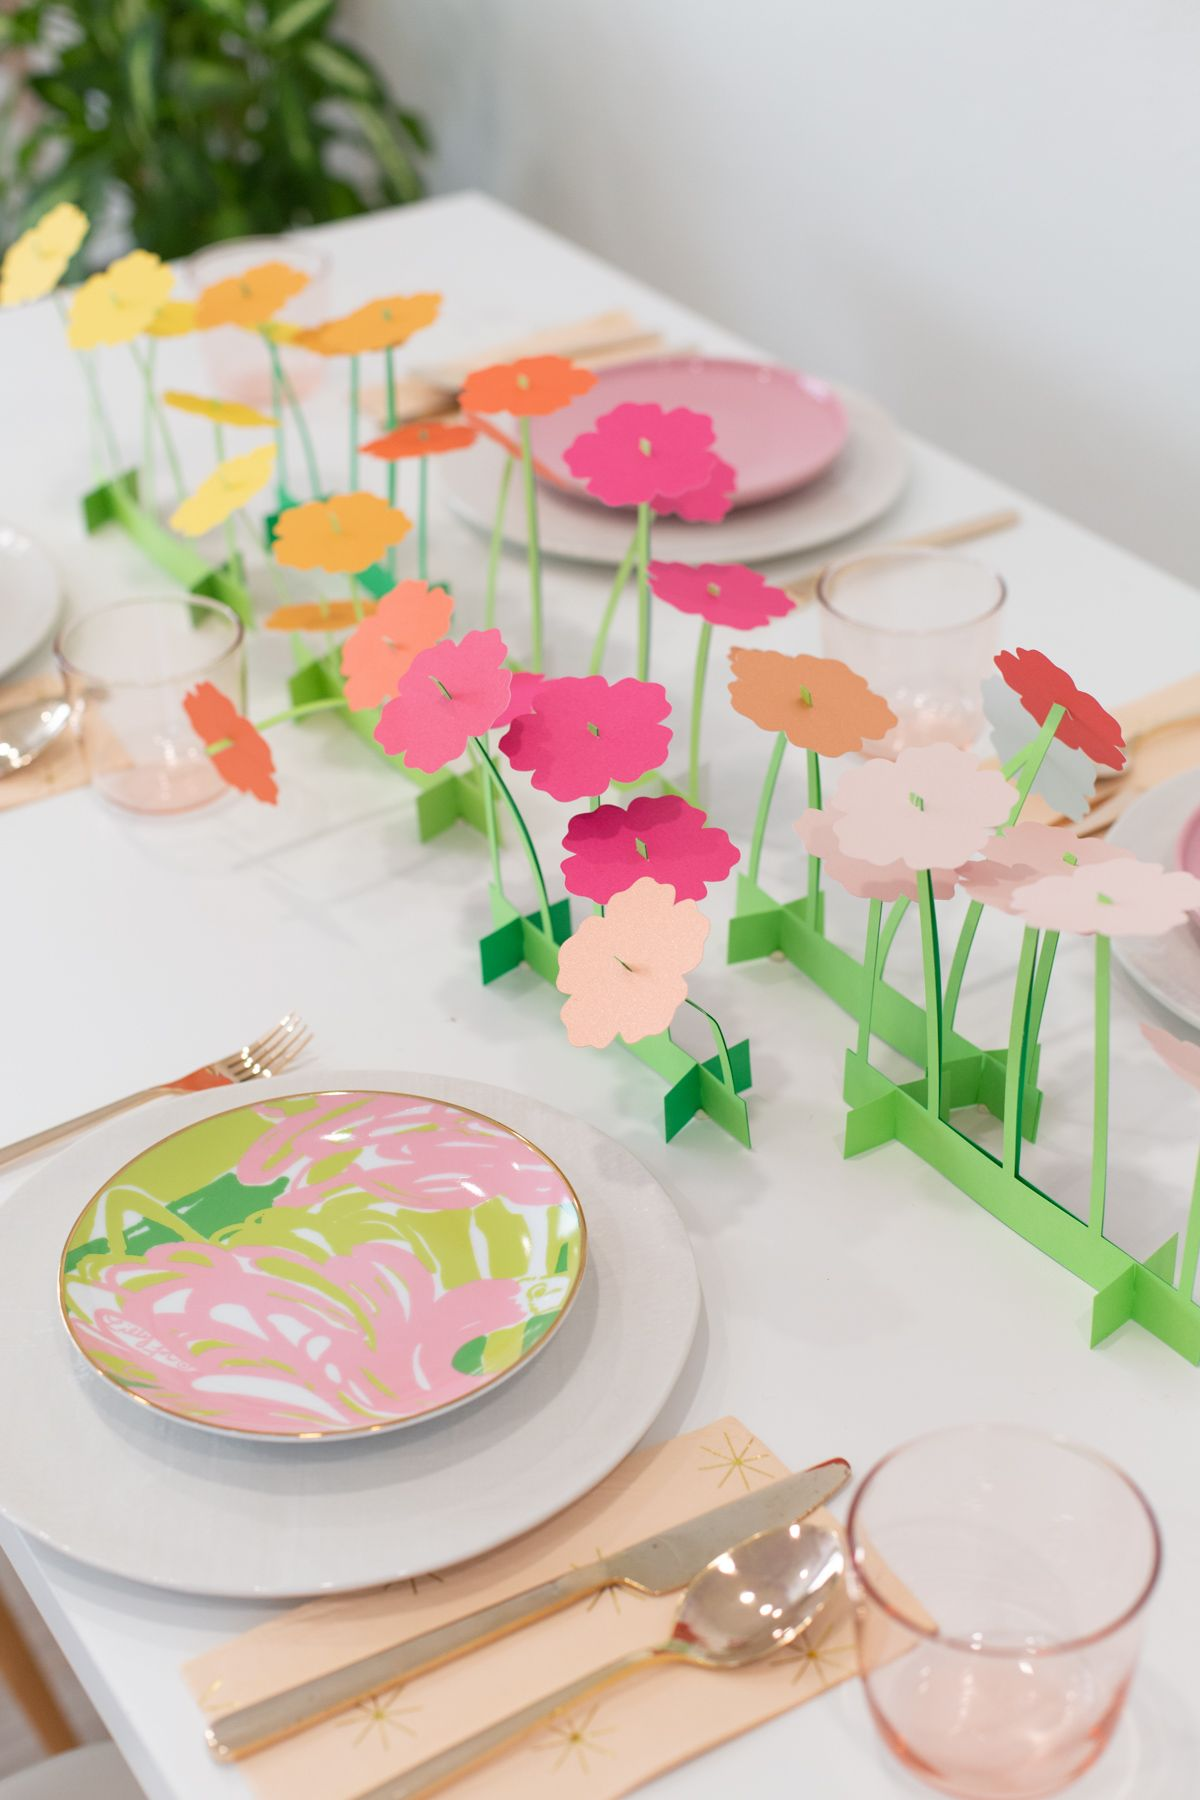 57 spring centerpieces and table decorations ideas for spring rh countryliving com